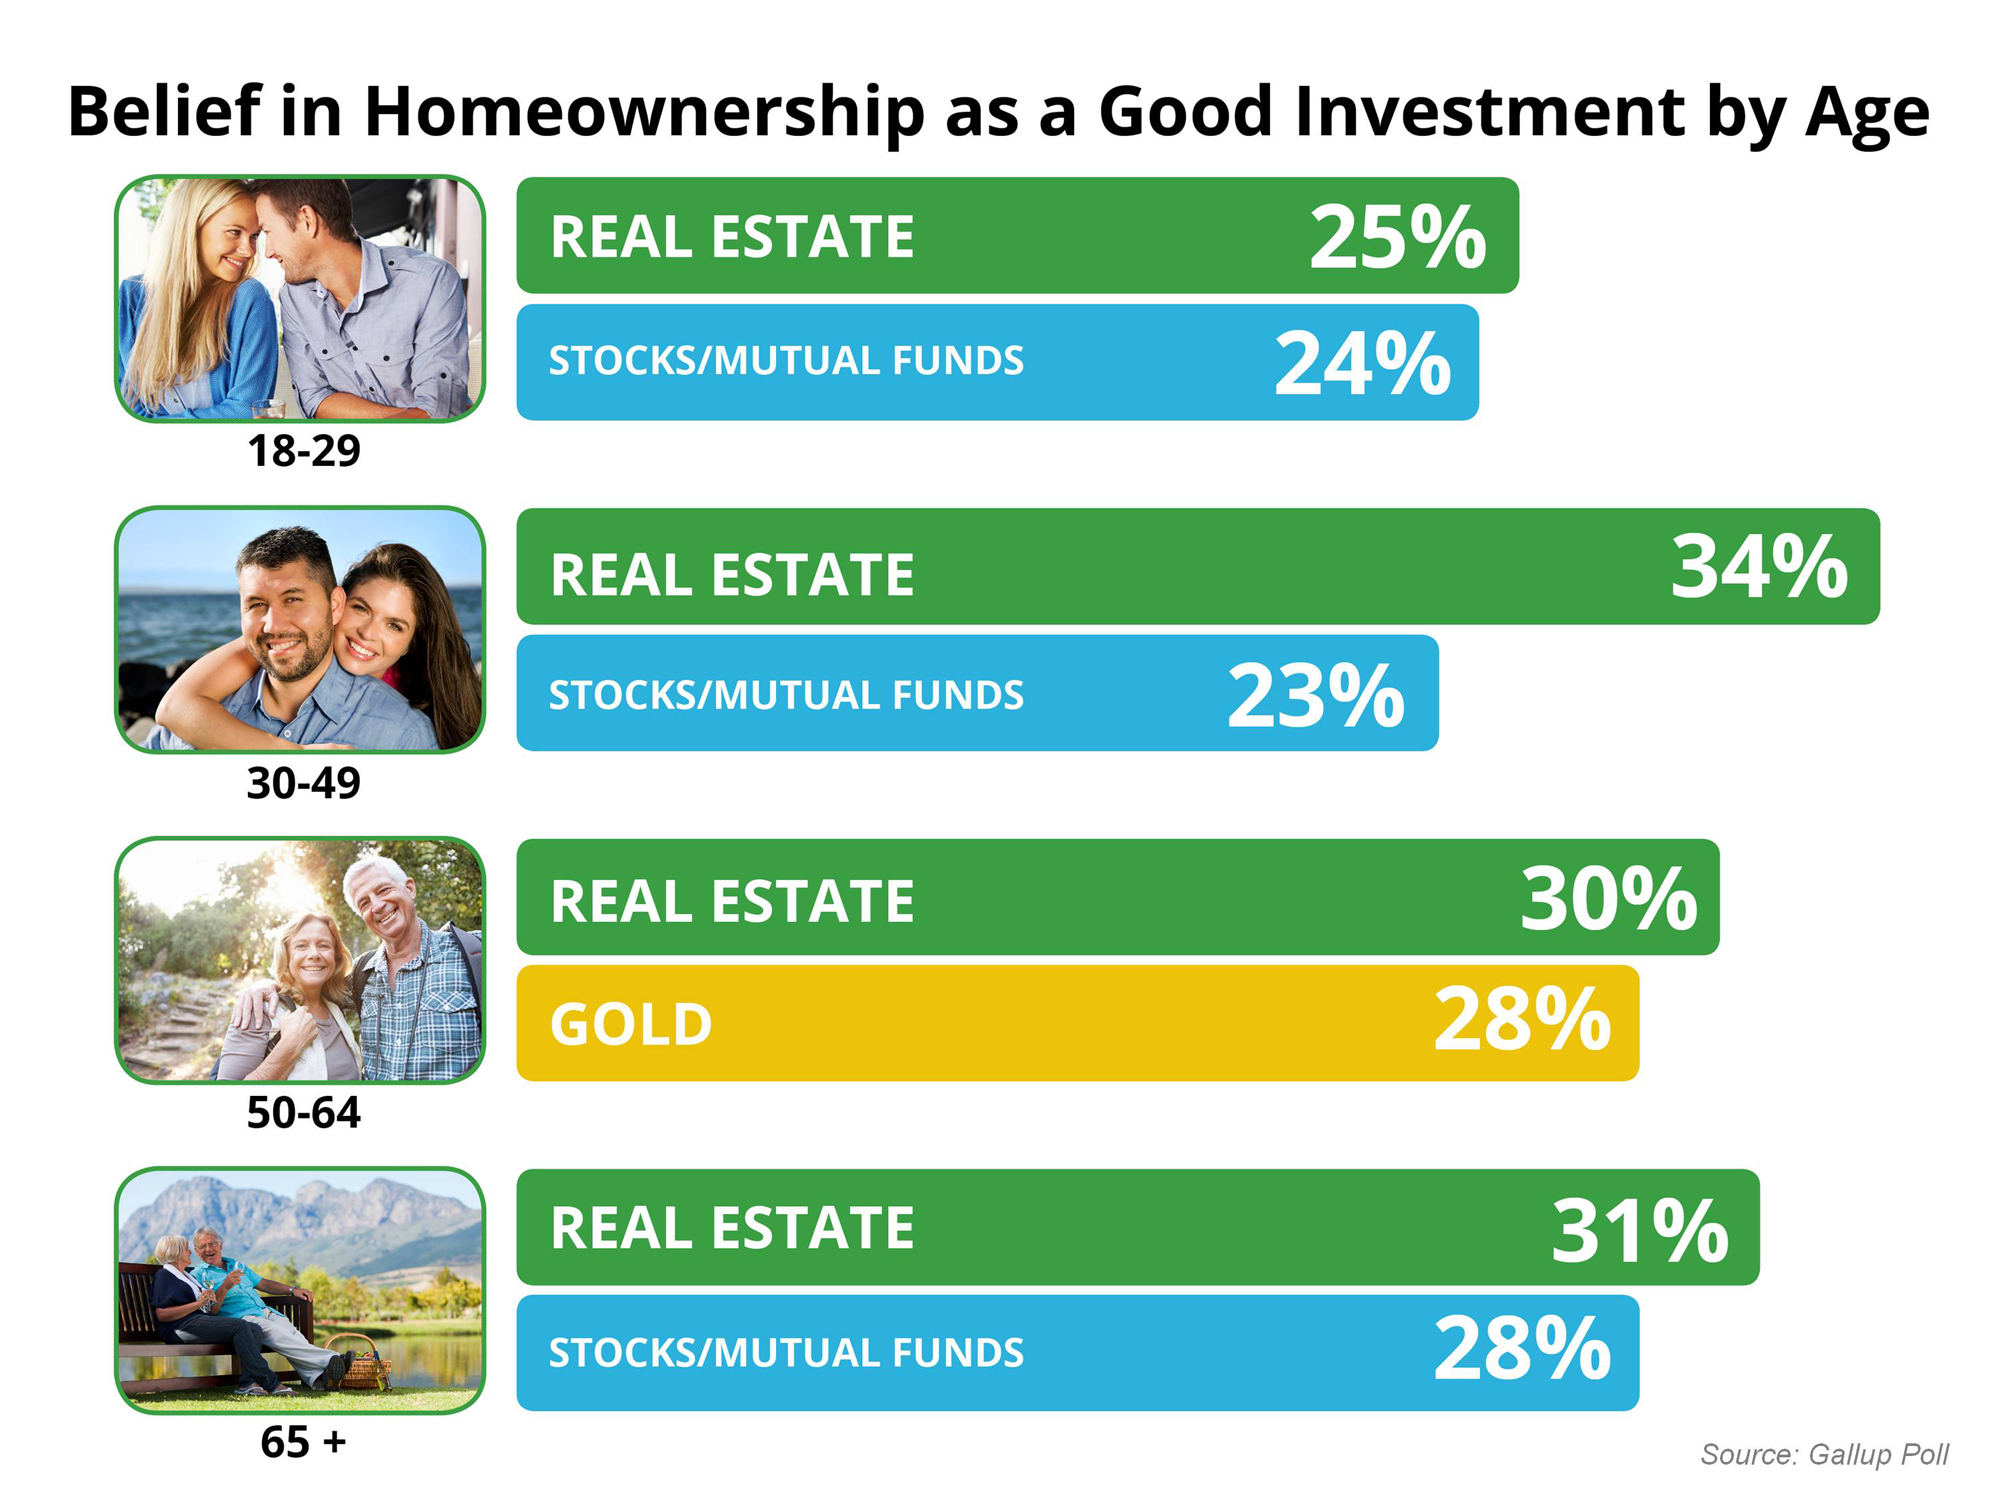 Americans Believe Real Estate is BEST Long-Term Investment